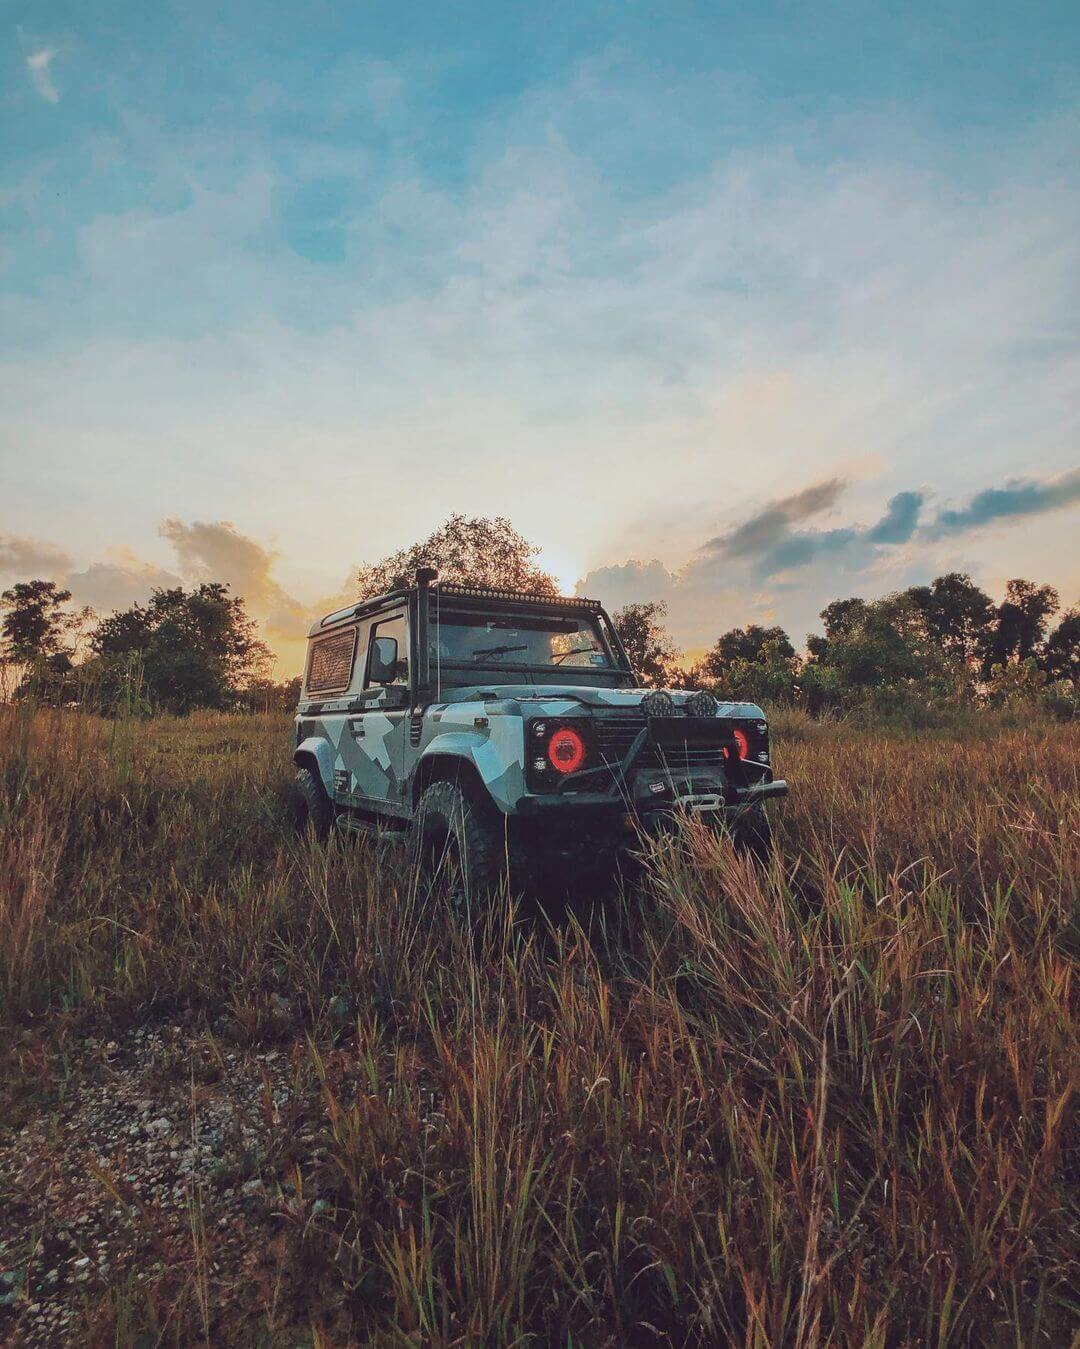 Lifted 2006 Land Rover Defender 90 with overland style modifications